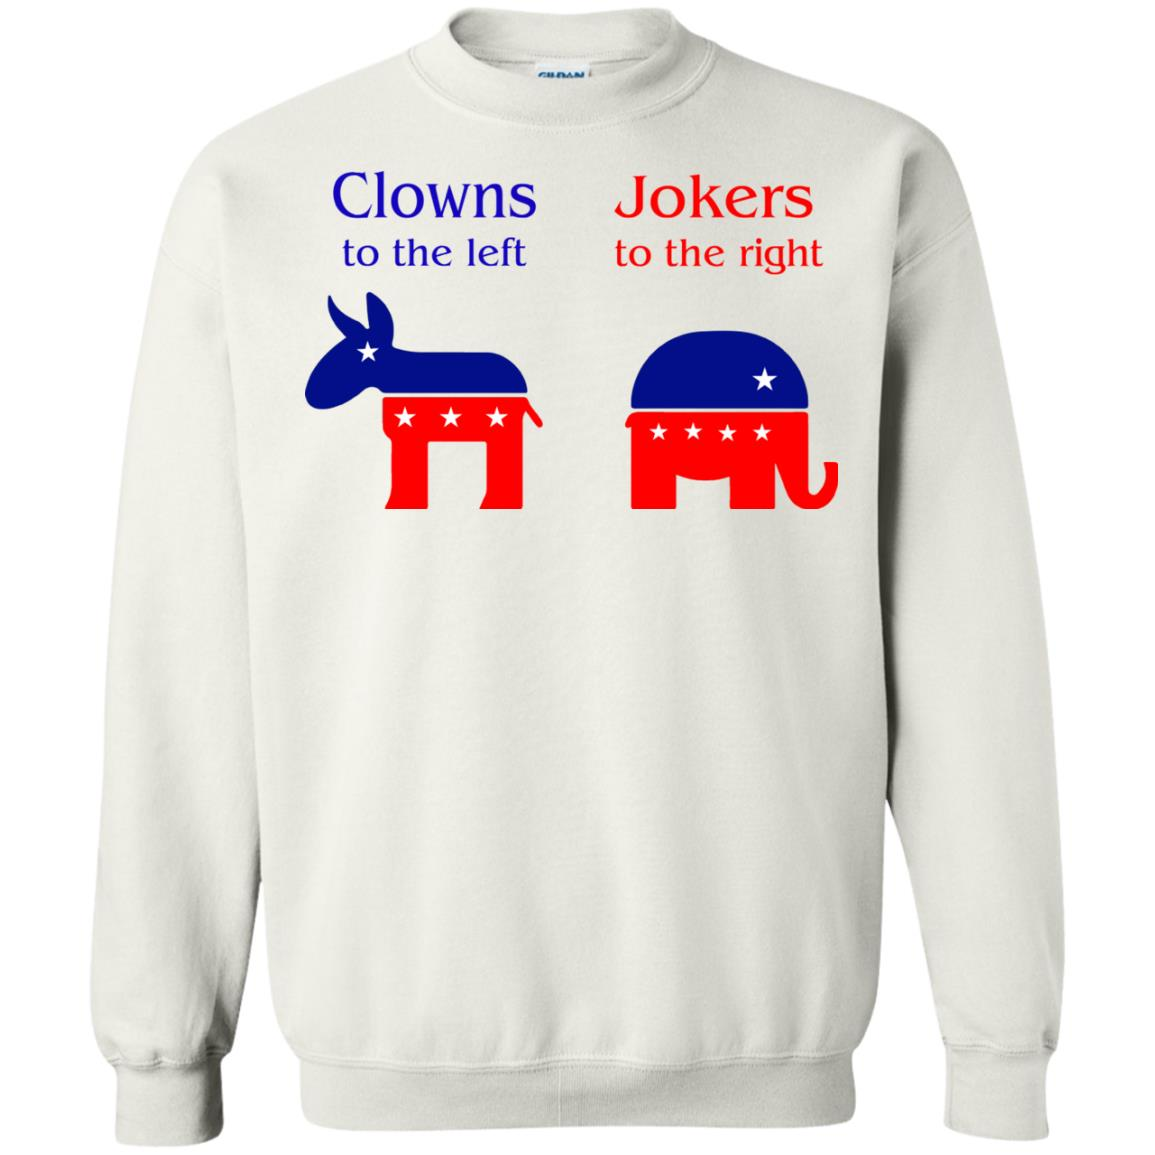 image 80 - Clowns To The Left, Jokers To The Right Shirt, Sweatshirt, Hoodie